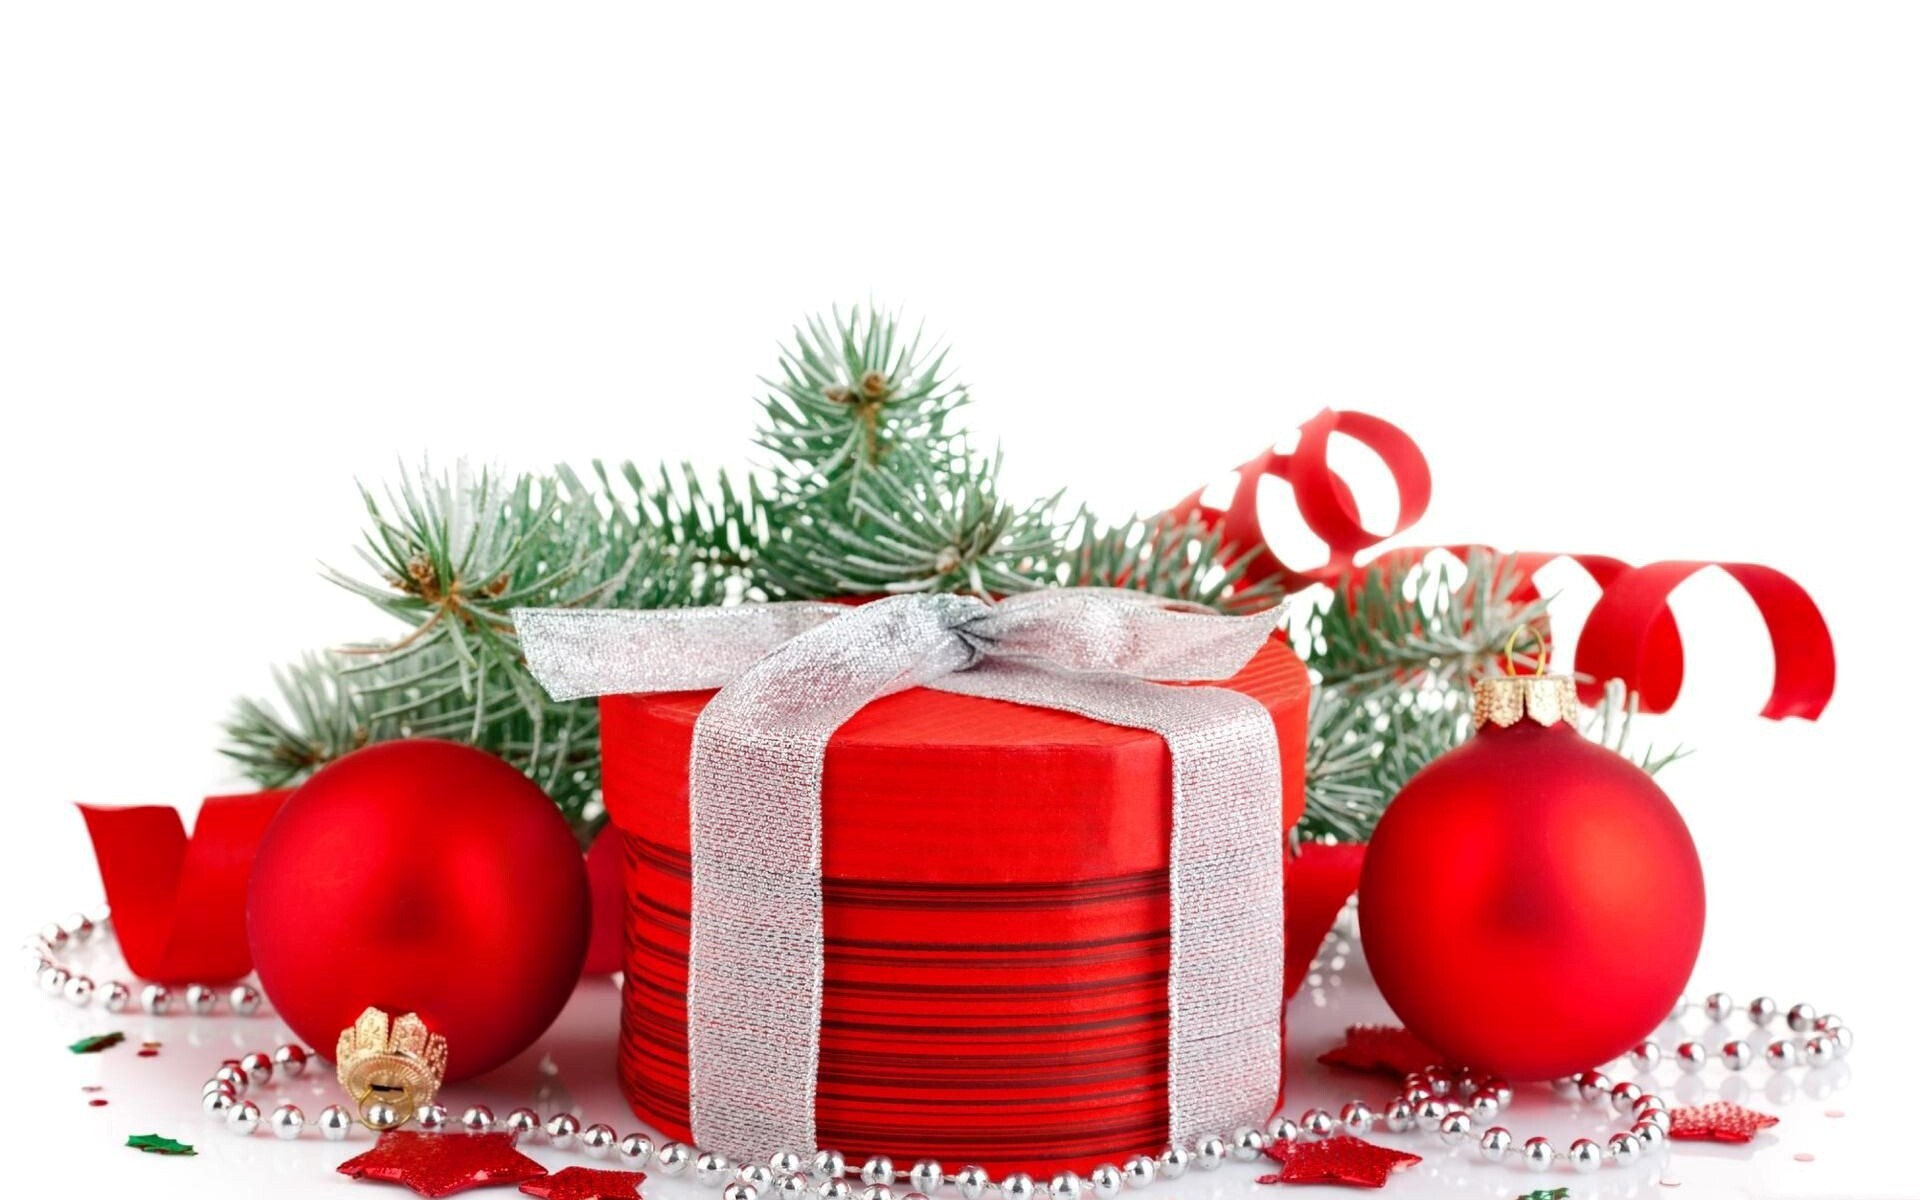 christmas downloads 523 tags christmas festival holiday wide gift